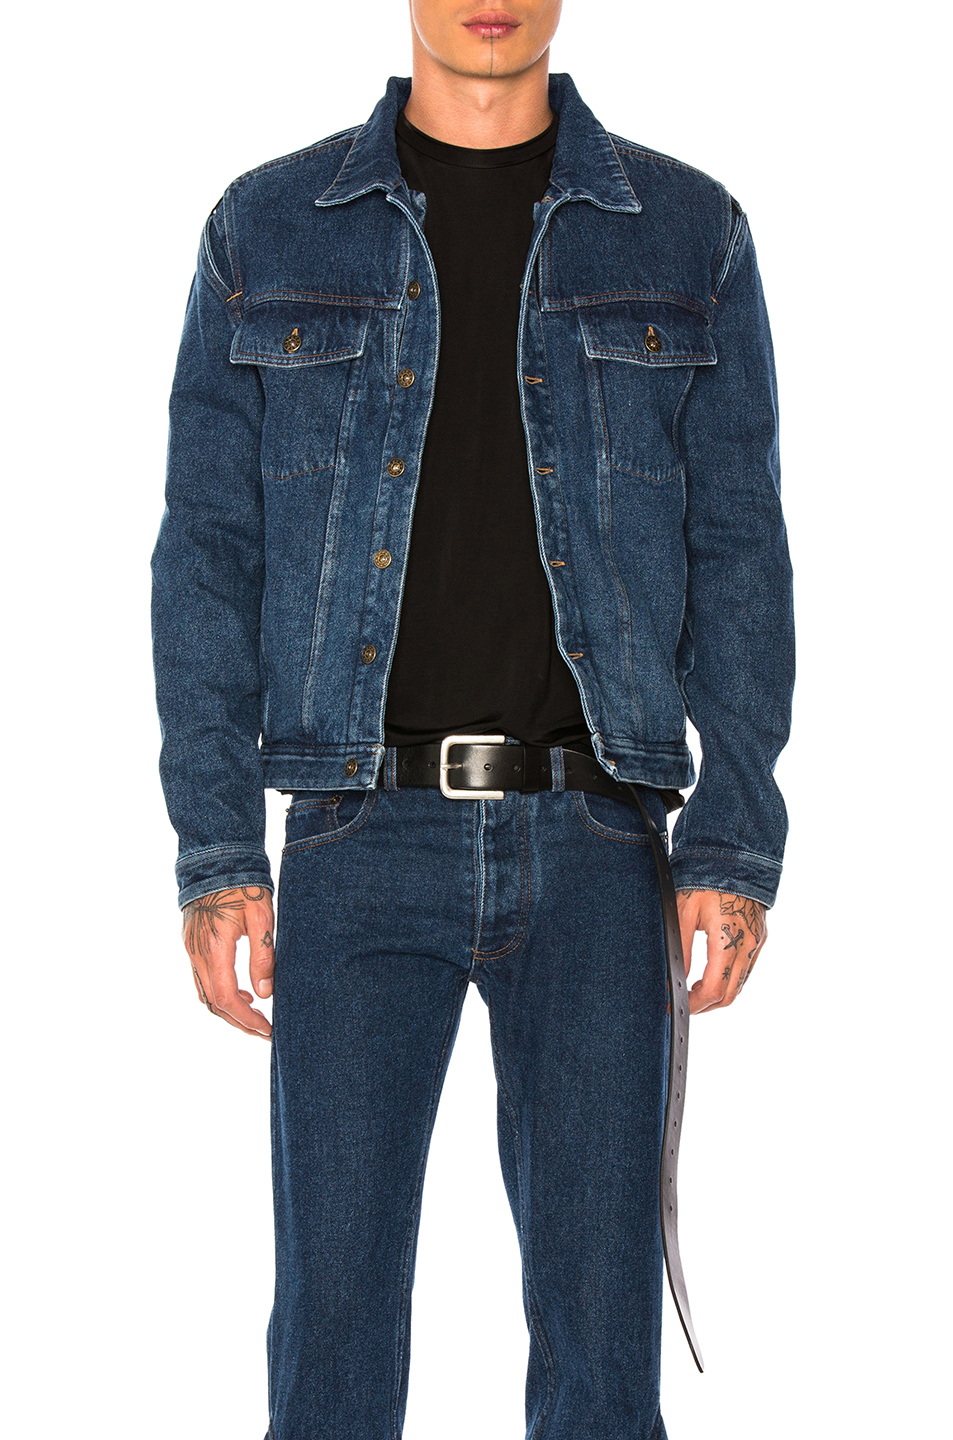 Y Project Denim Jacket in Blue